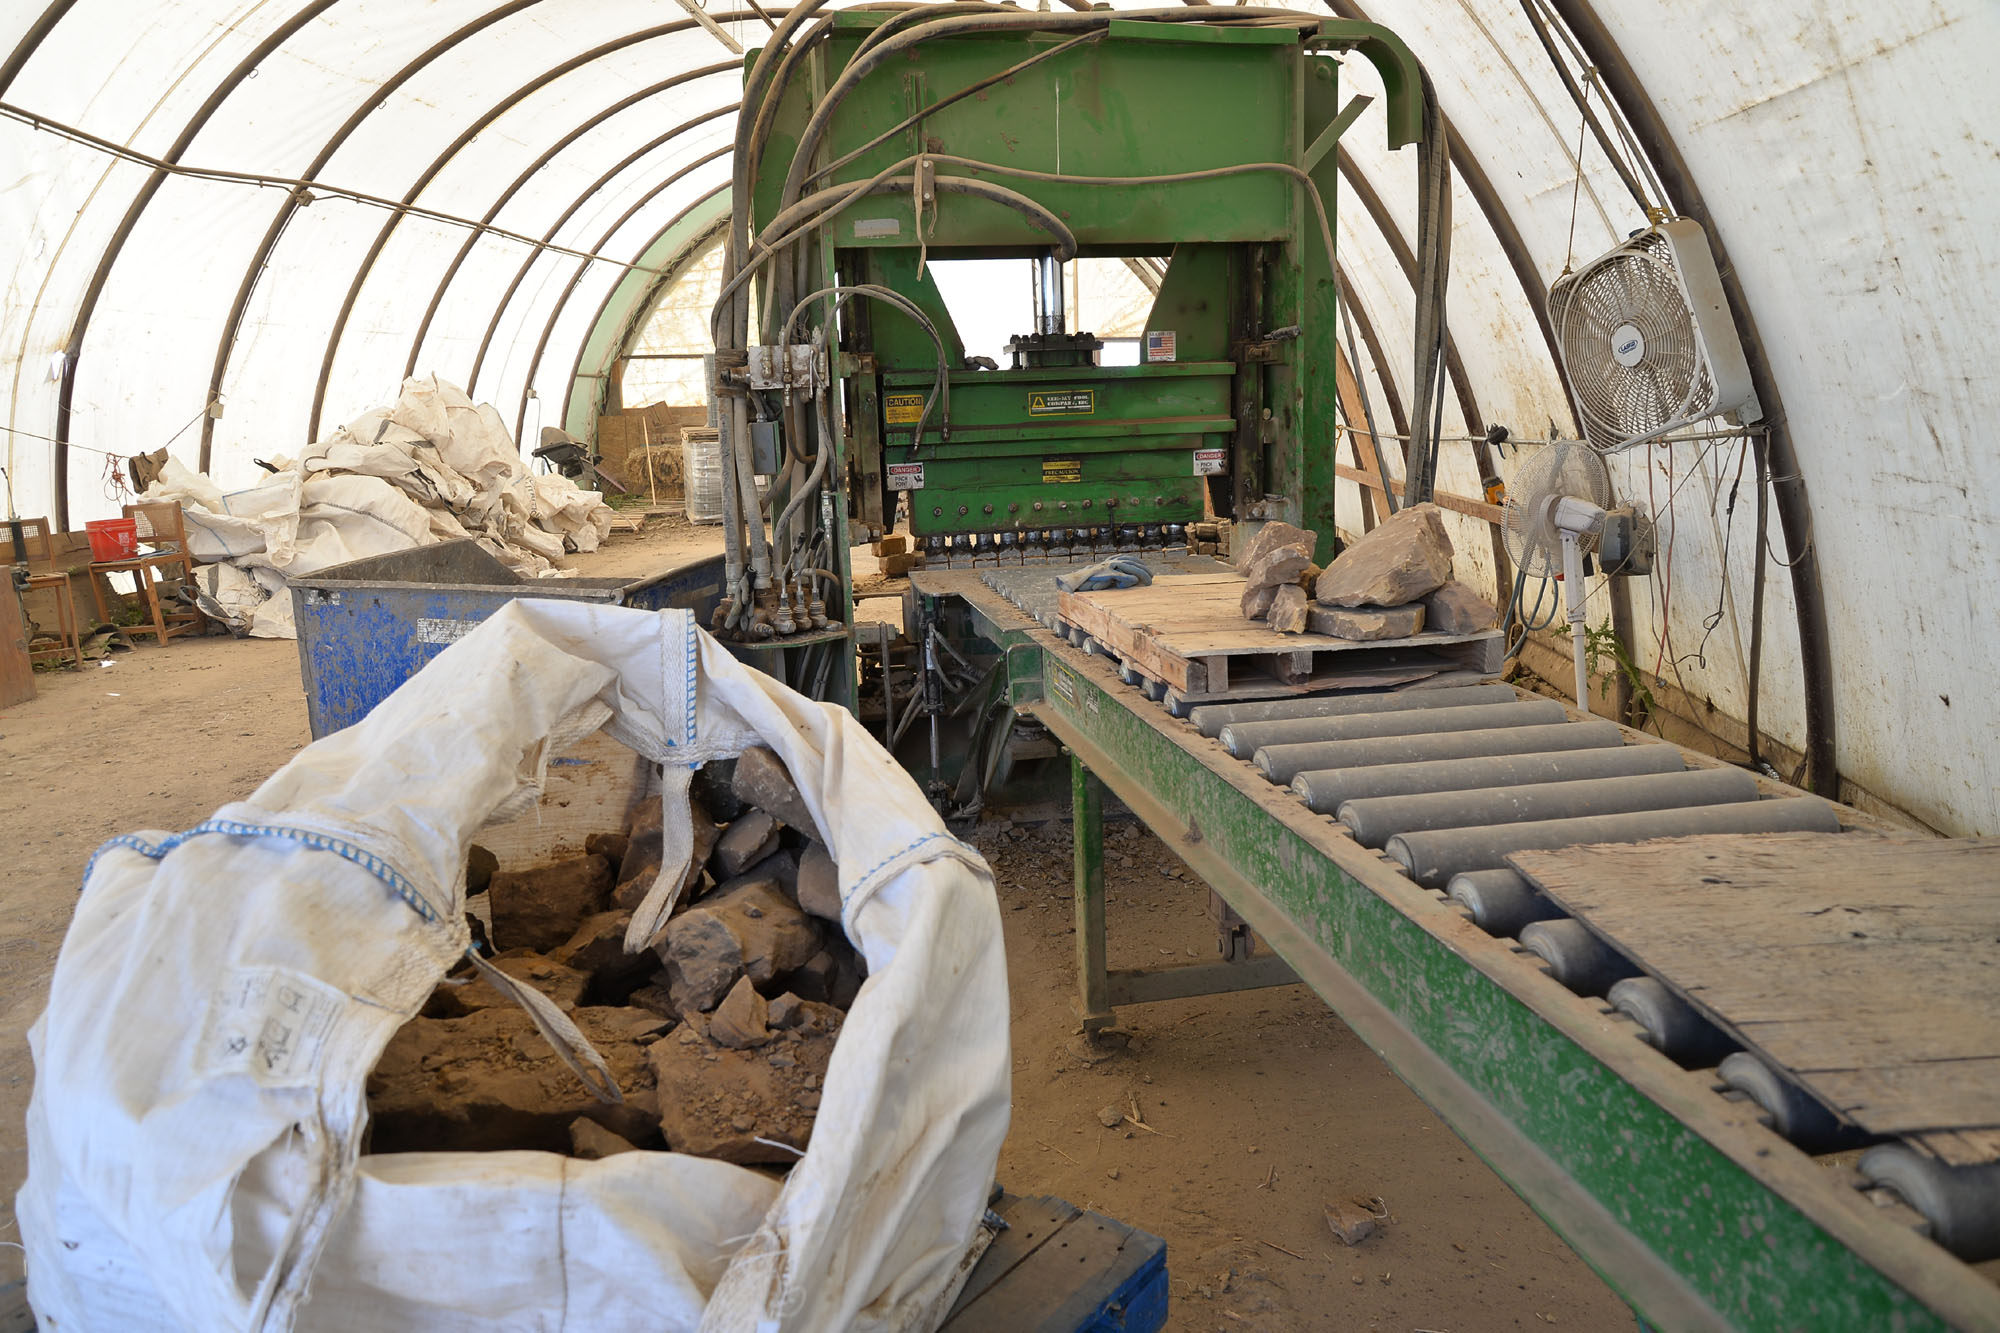 In the processing area, we chop the raw stone into usable sizes and shapes.